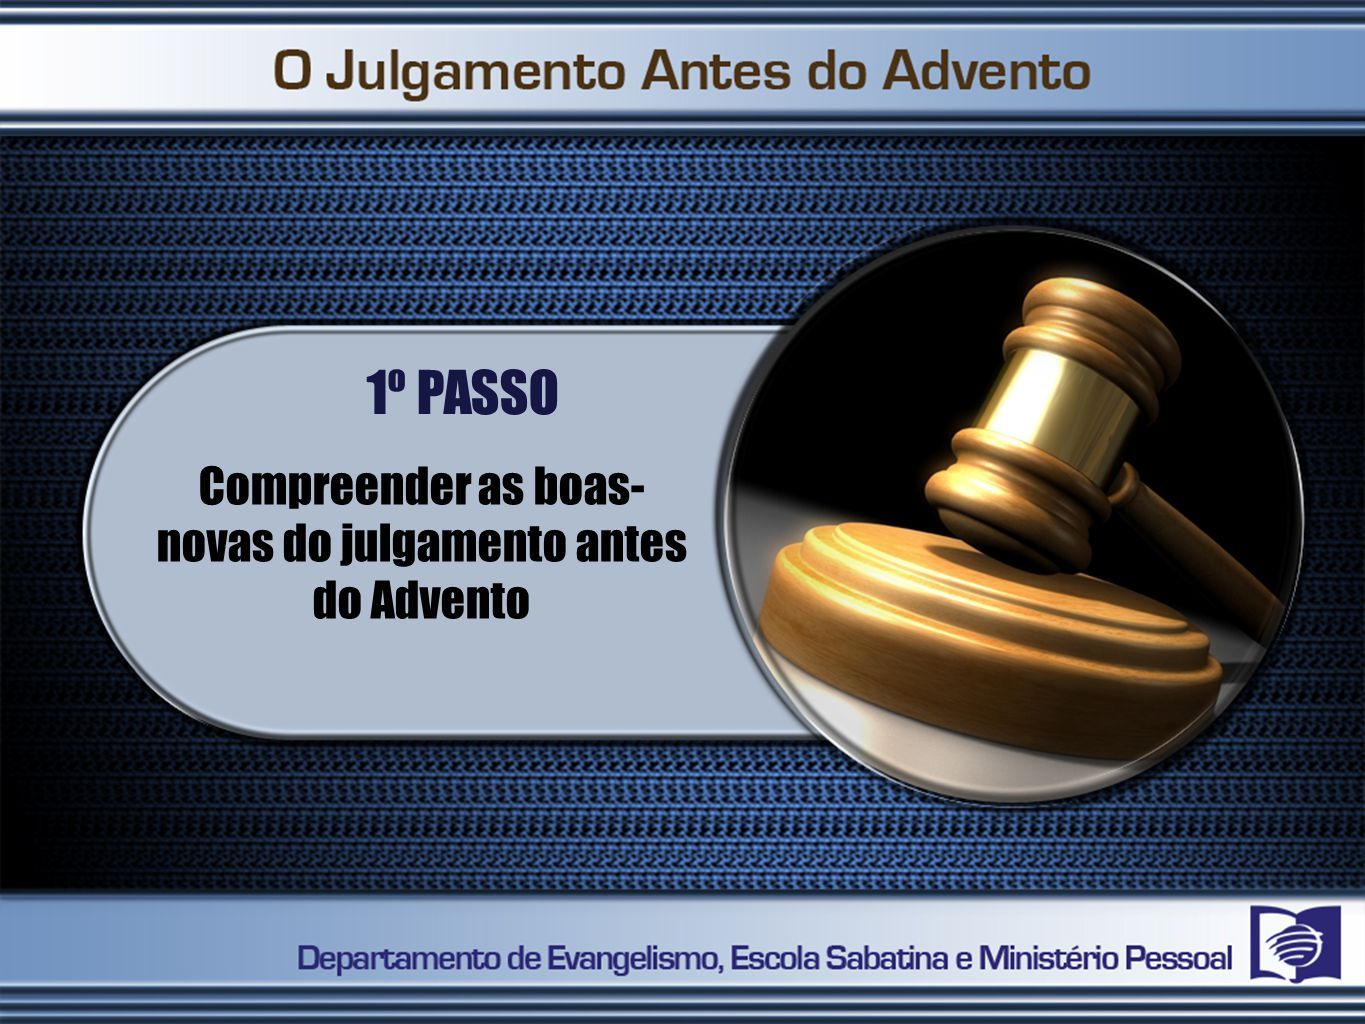 Compreender as boas-novas do julgamento antes do Advento